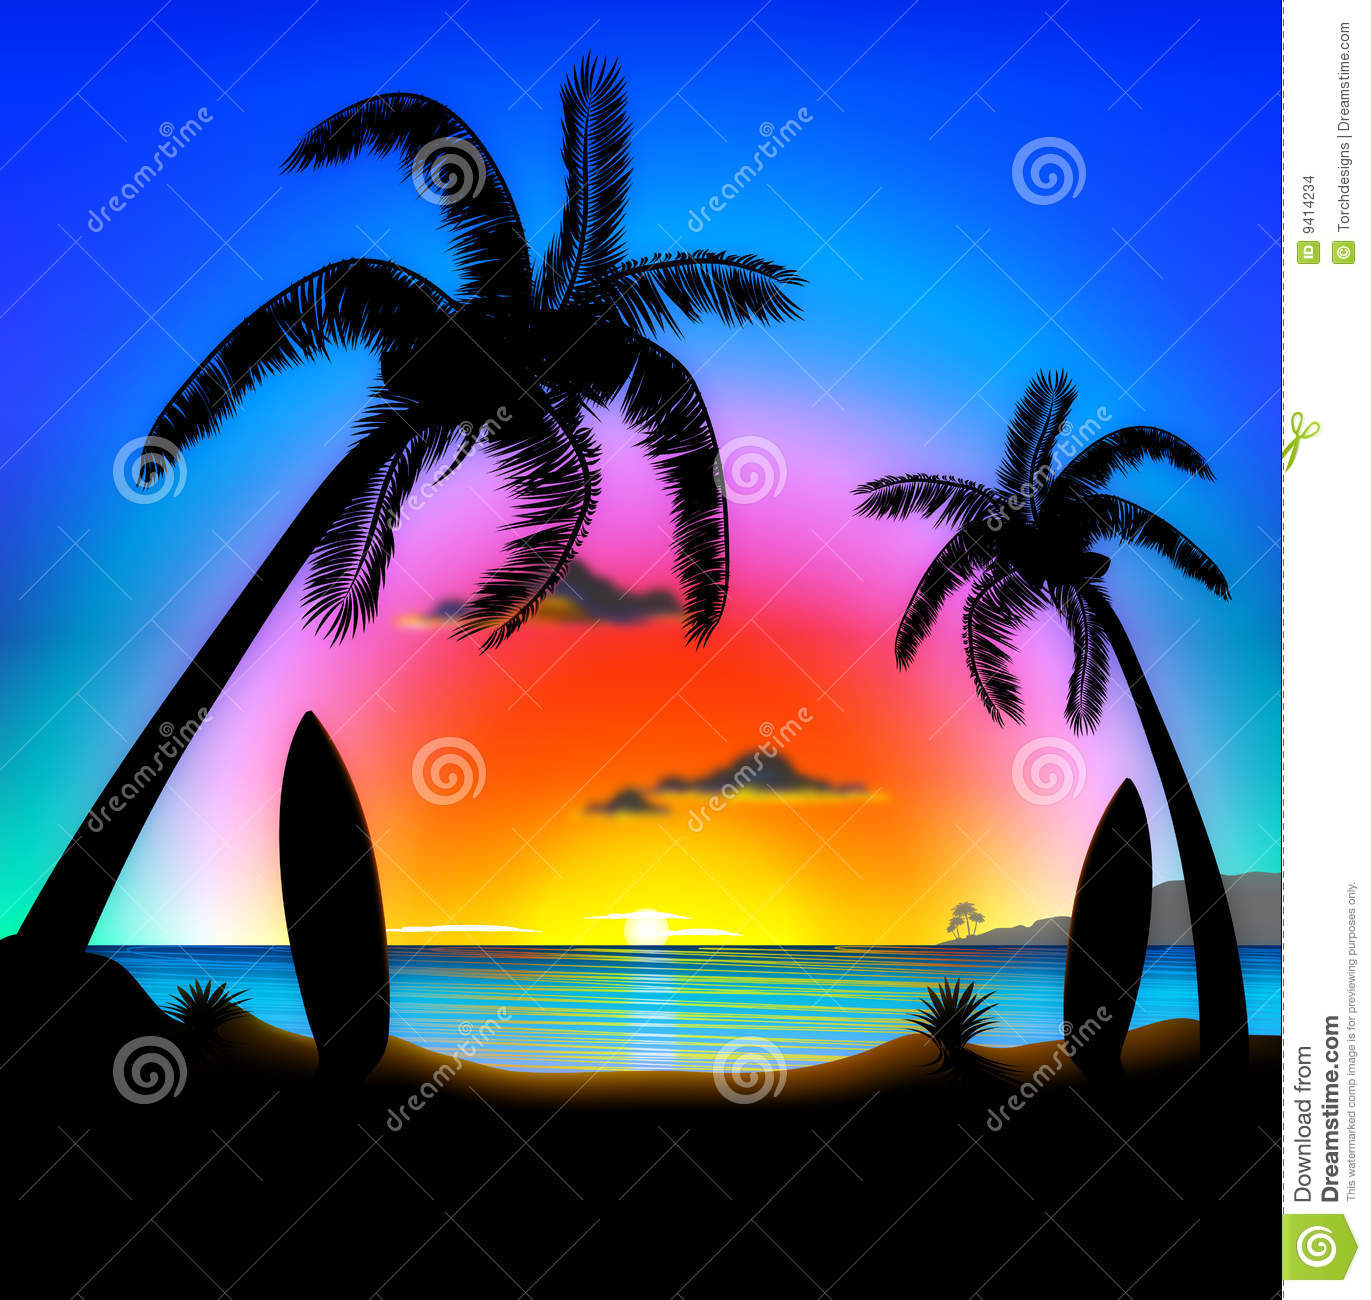 tropical beach at sunset surfing illustration stock